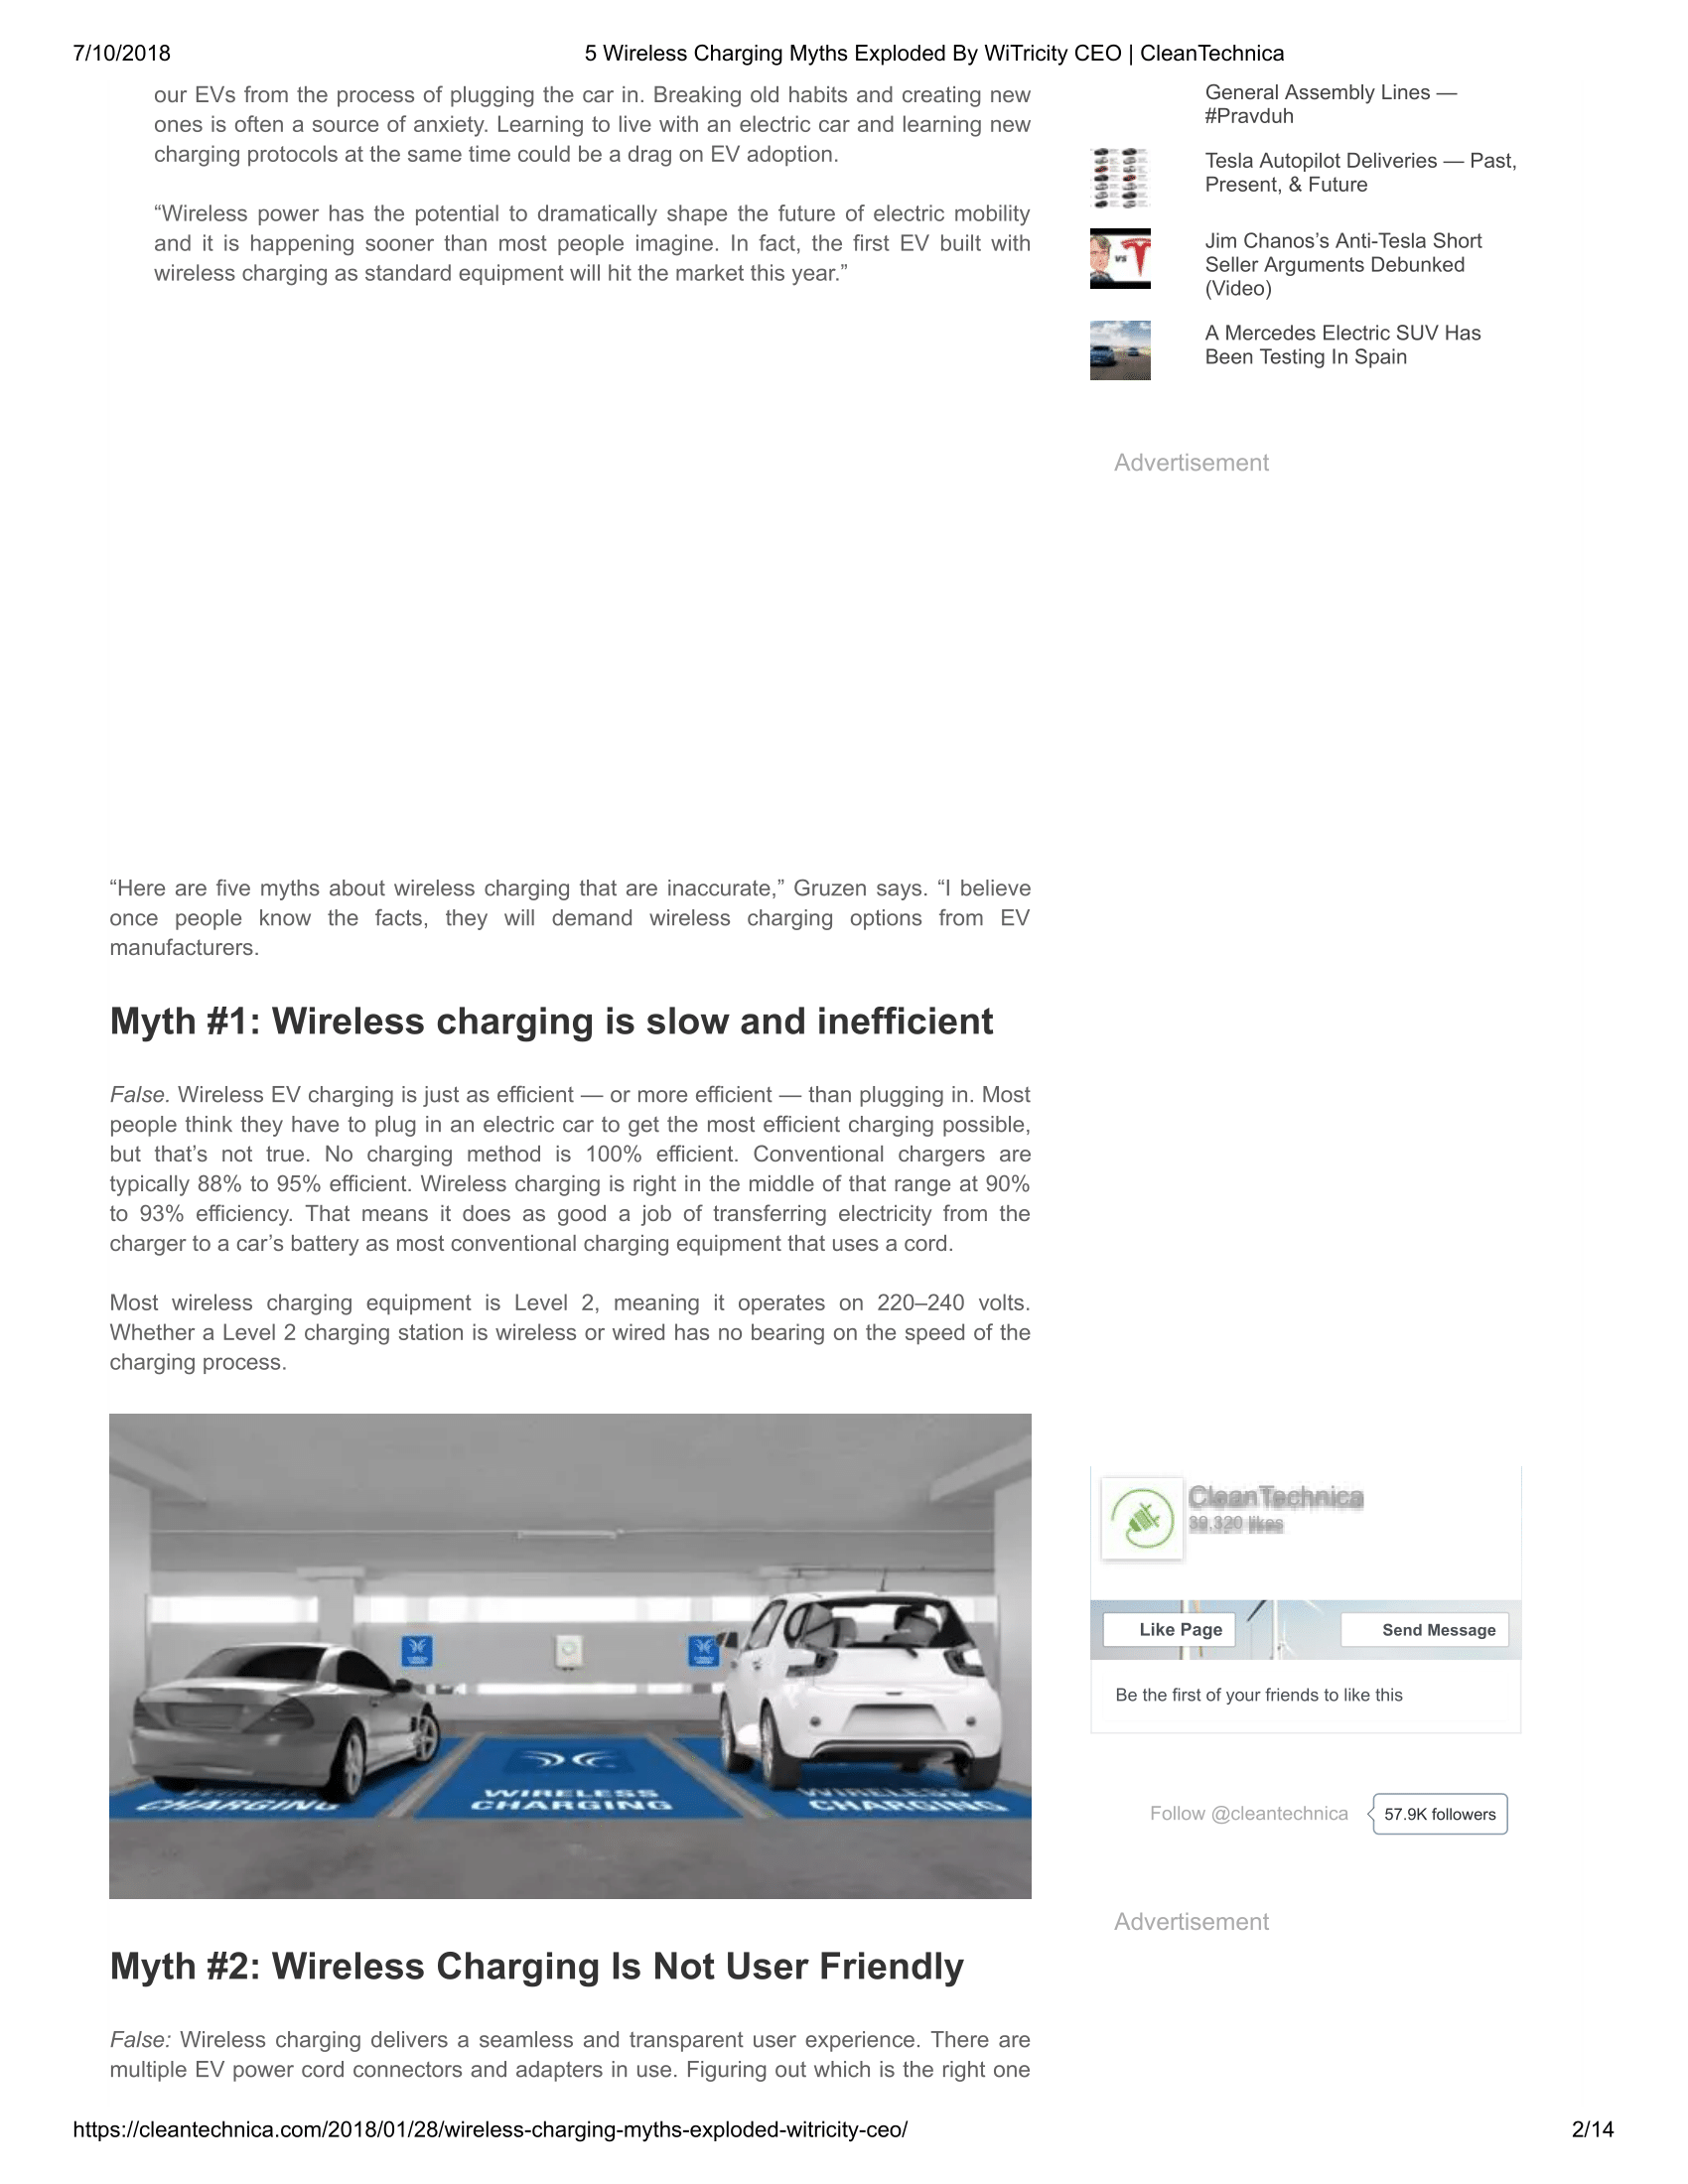 5 Wireless Charging Myths Exploded By WiTricity CEO _ CleanTechnica-2.png